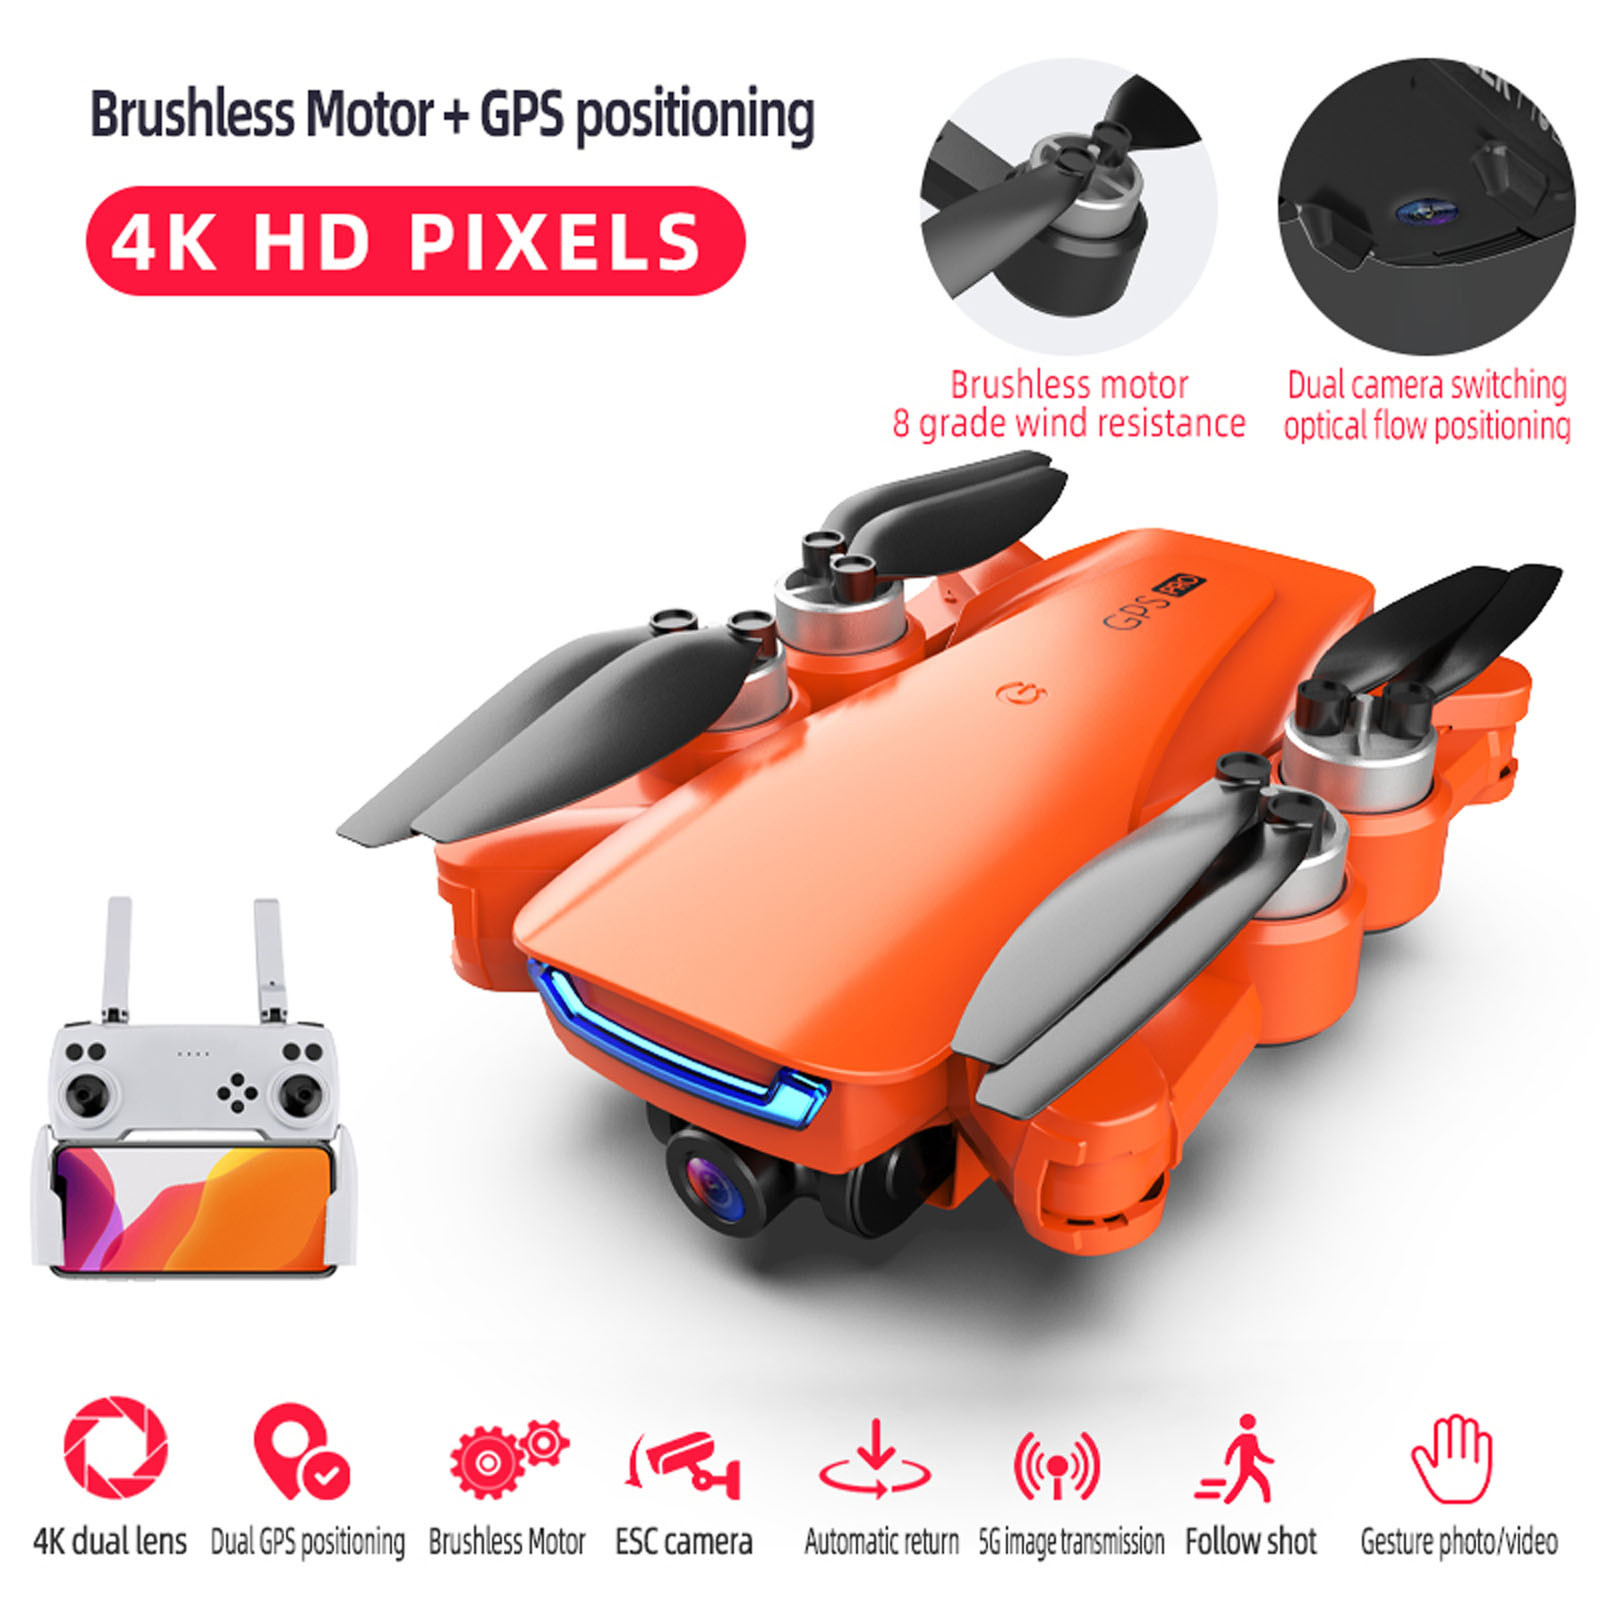 , Lu5 Pro Brushless Drone Drone With Double Hd Camera Gps 4k 5g Wifi Fpv Optical Brushless Rc Quadcopter Orange Fashion Drone, princxkonline